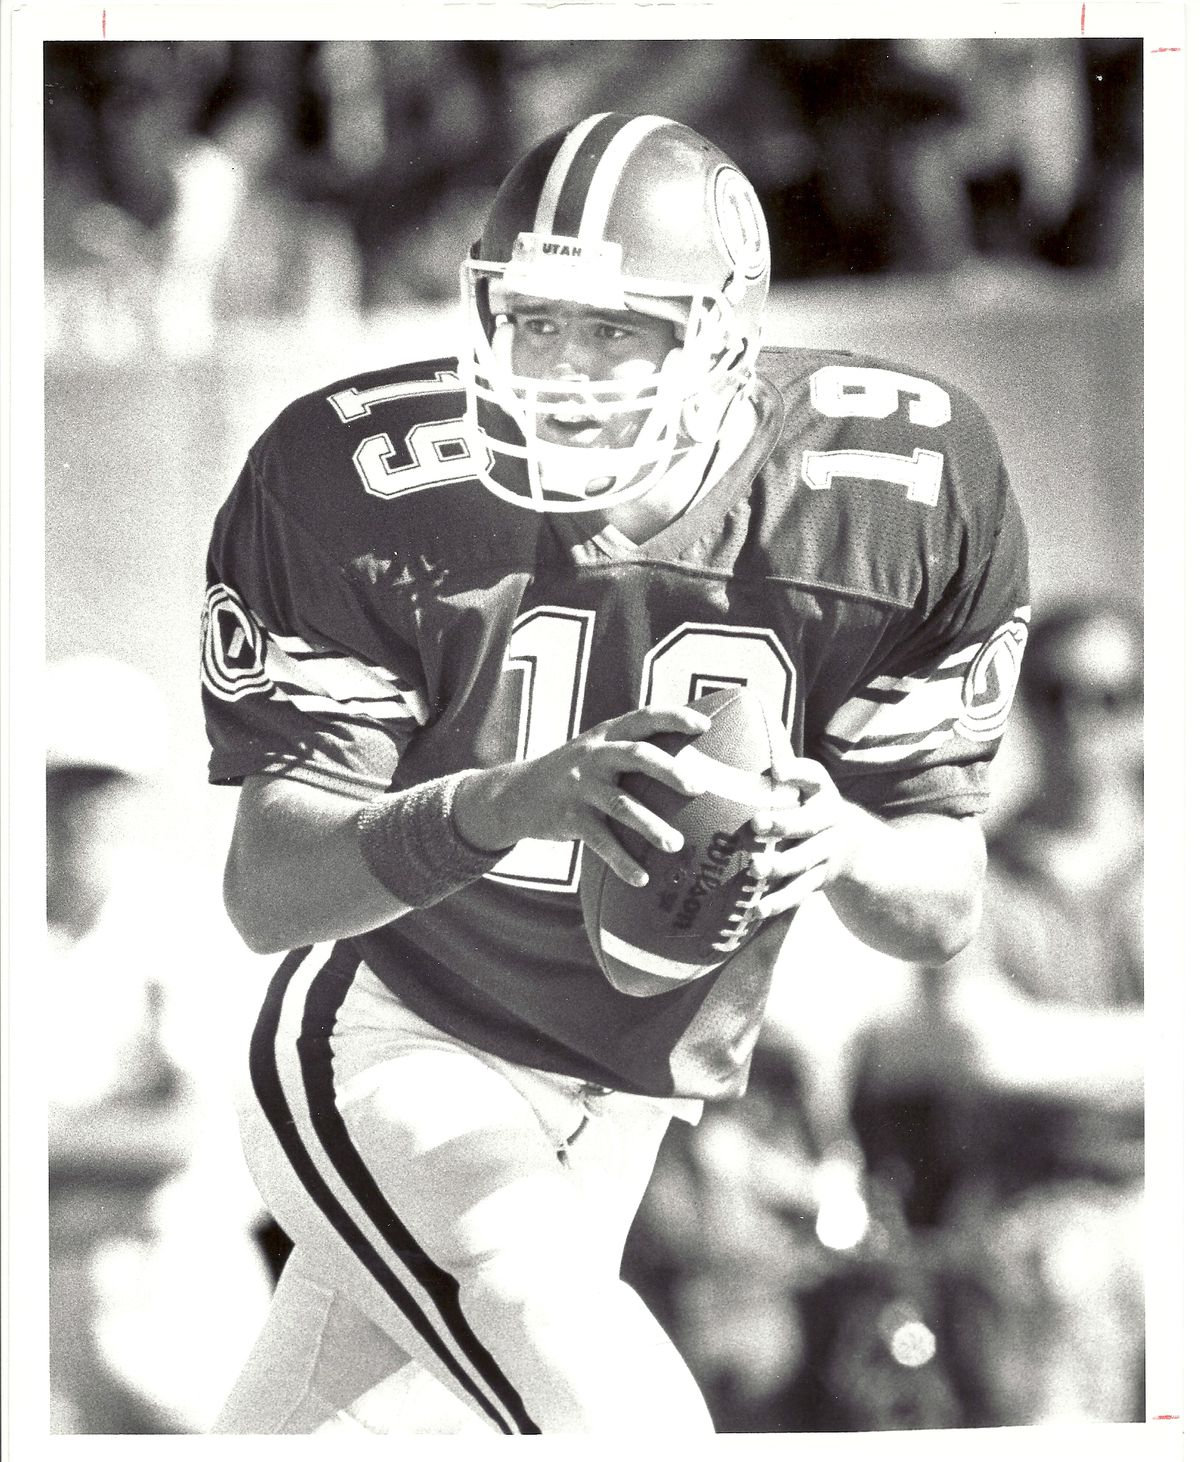 Utah quarterback Scott Mitchell, shown here dropping back to pass, led the Utes to a surprisingly lopsided victory over the Cougars in 1988.